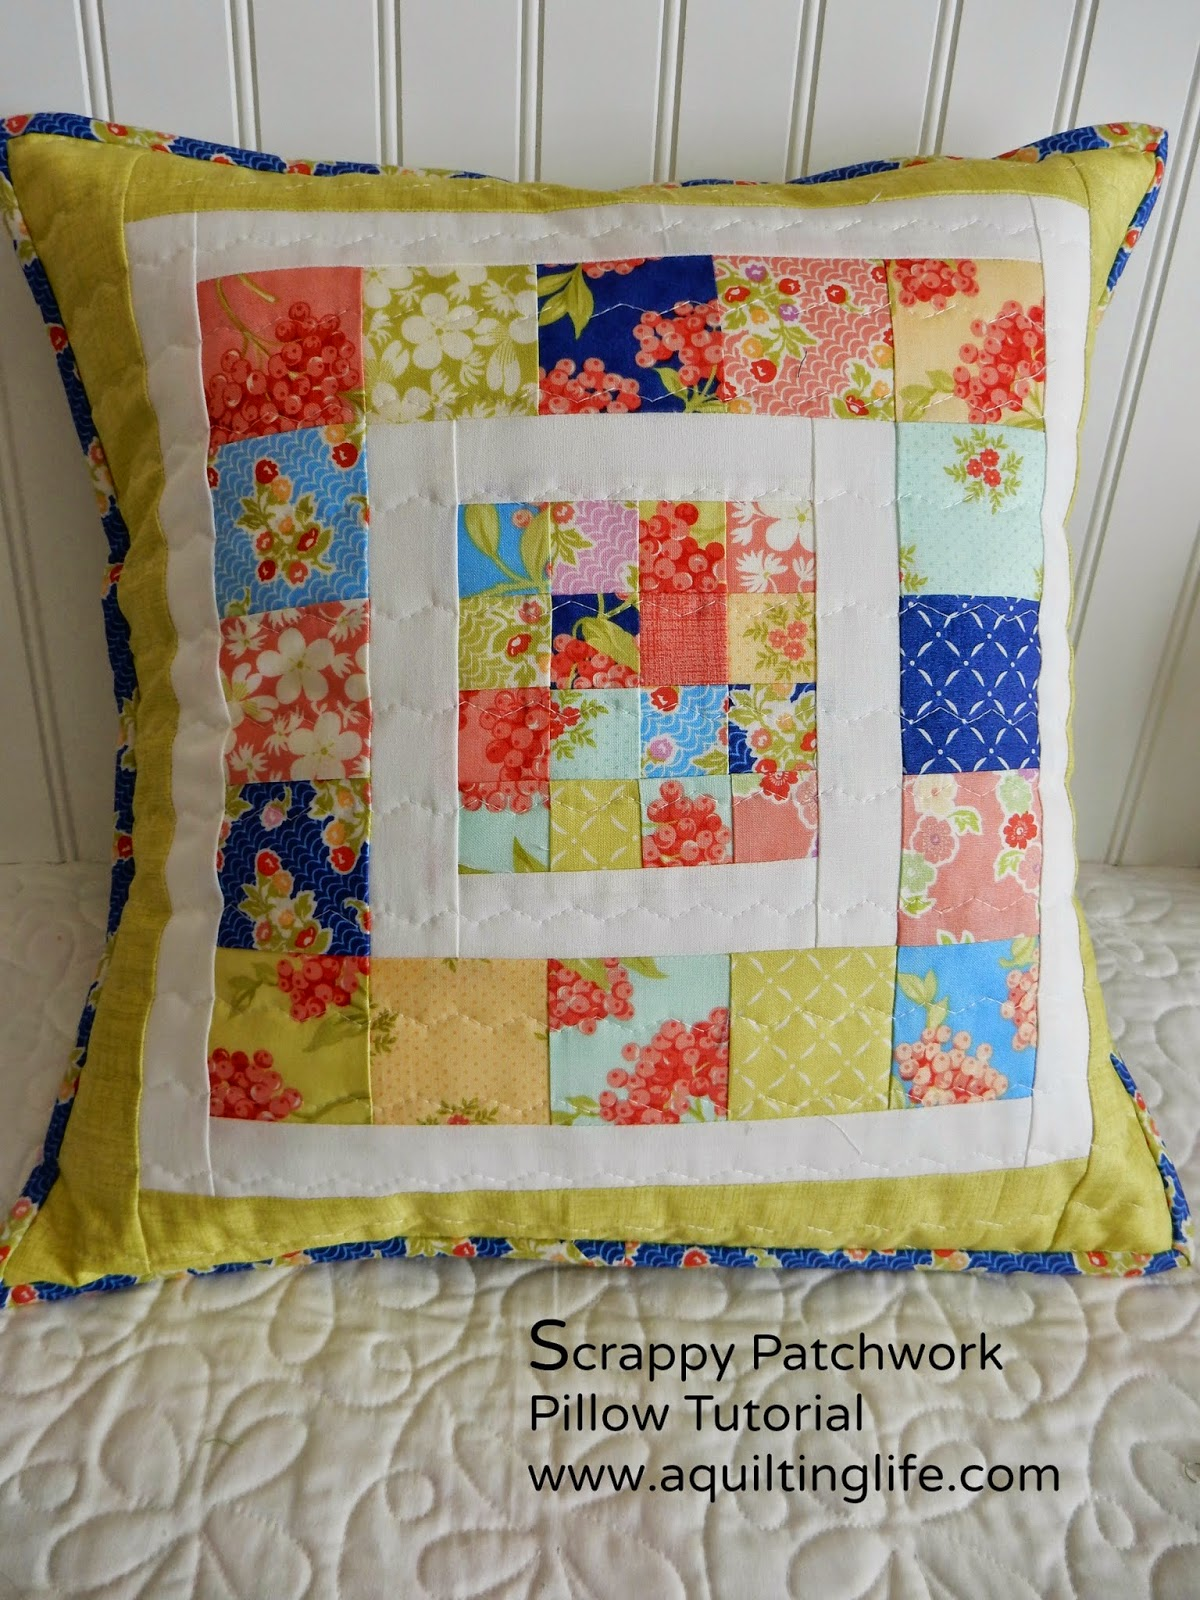 Scrappy Patchwork Pillow Tutorial A Quilting Life